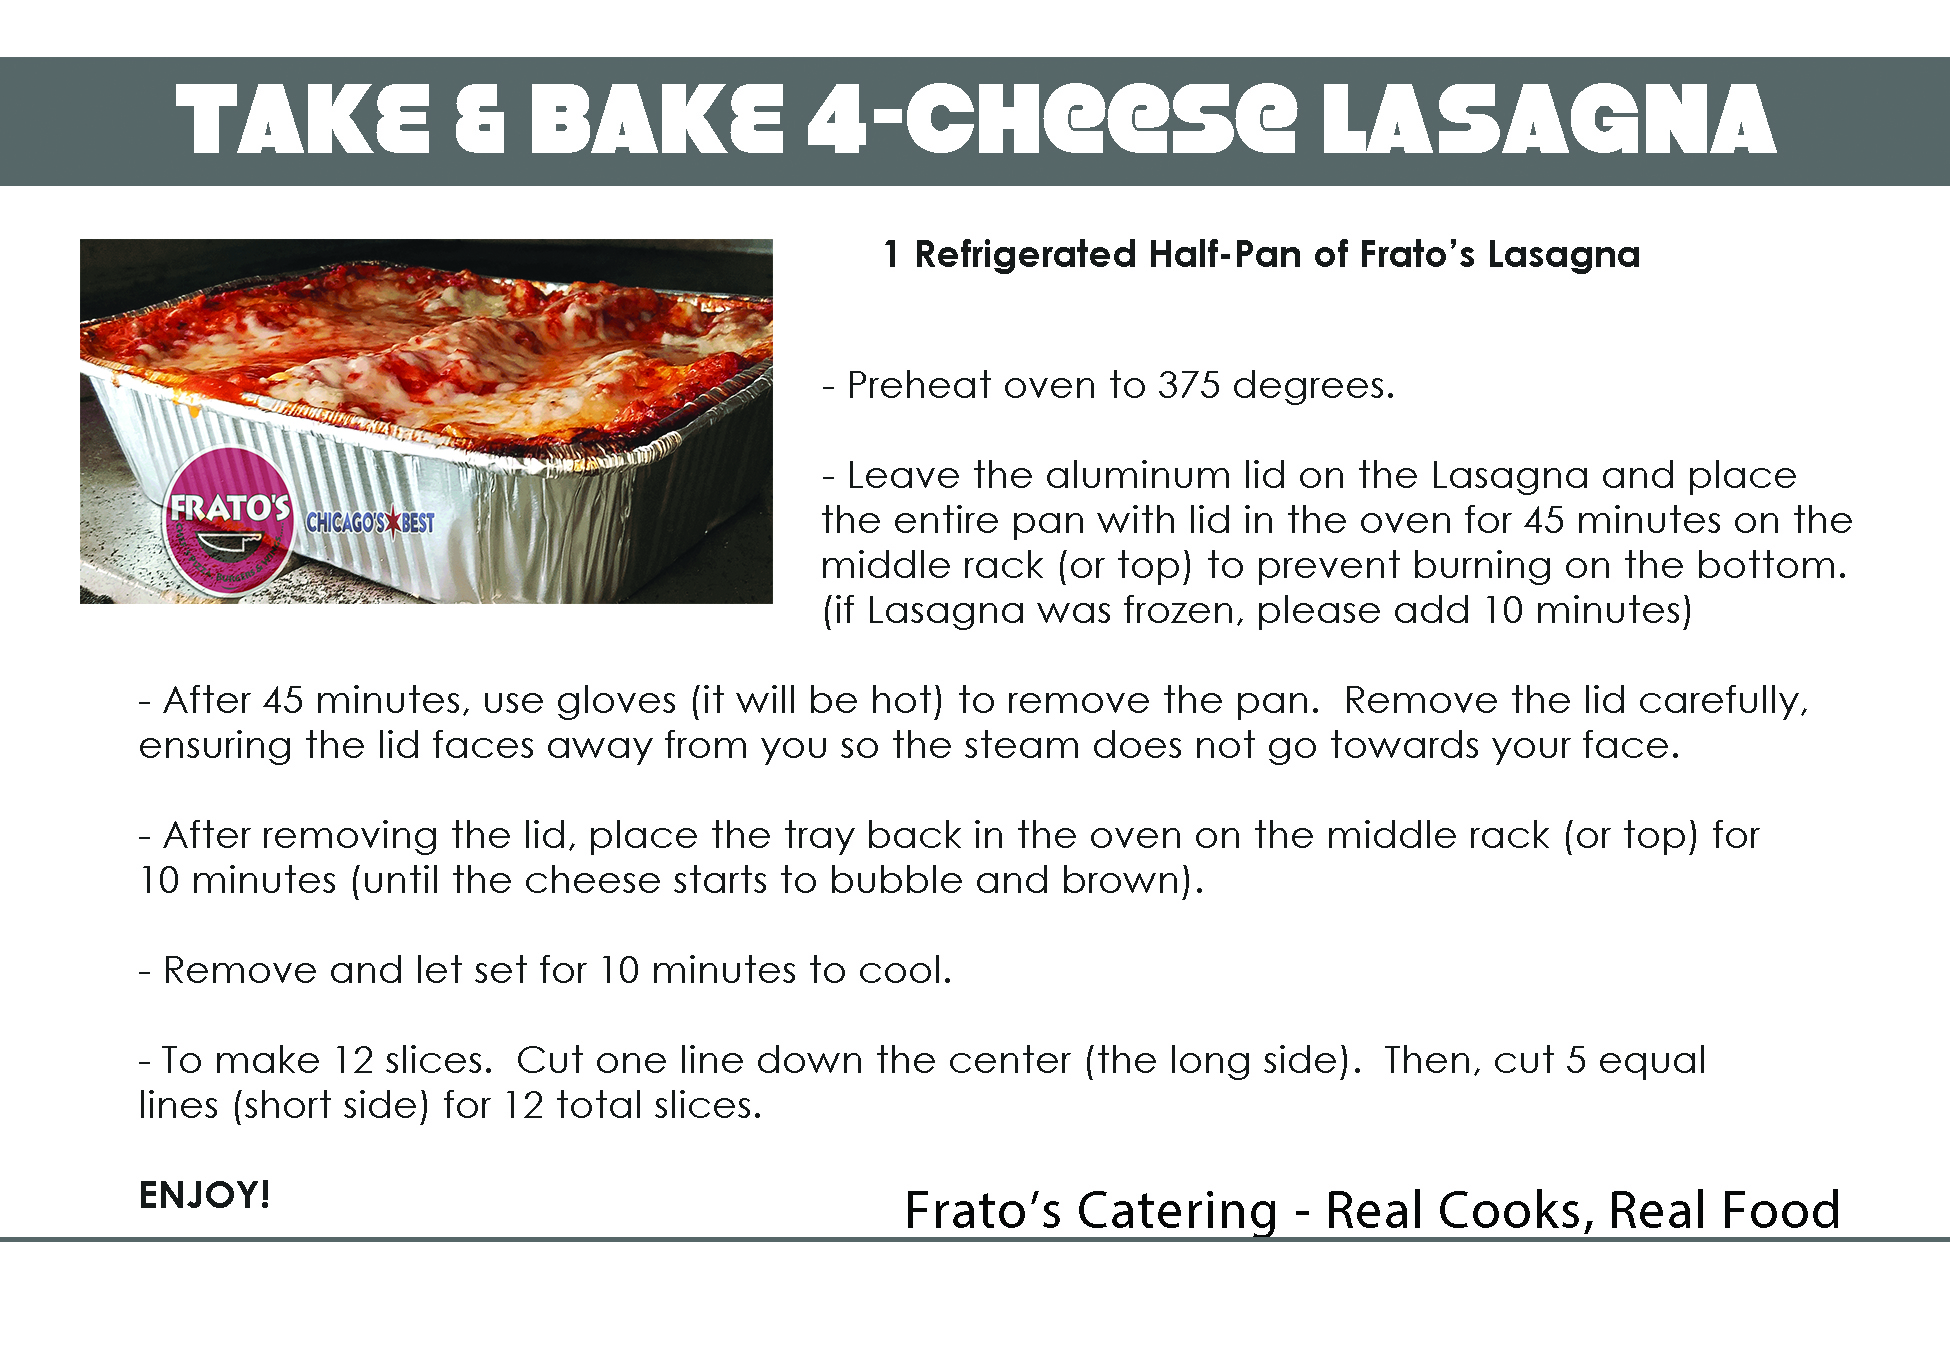 lasagna-recipe-instructions-6-5-x-4-5-vprintready